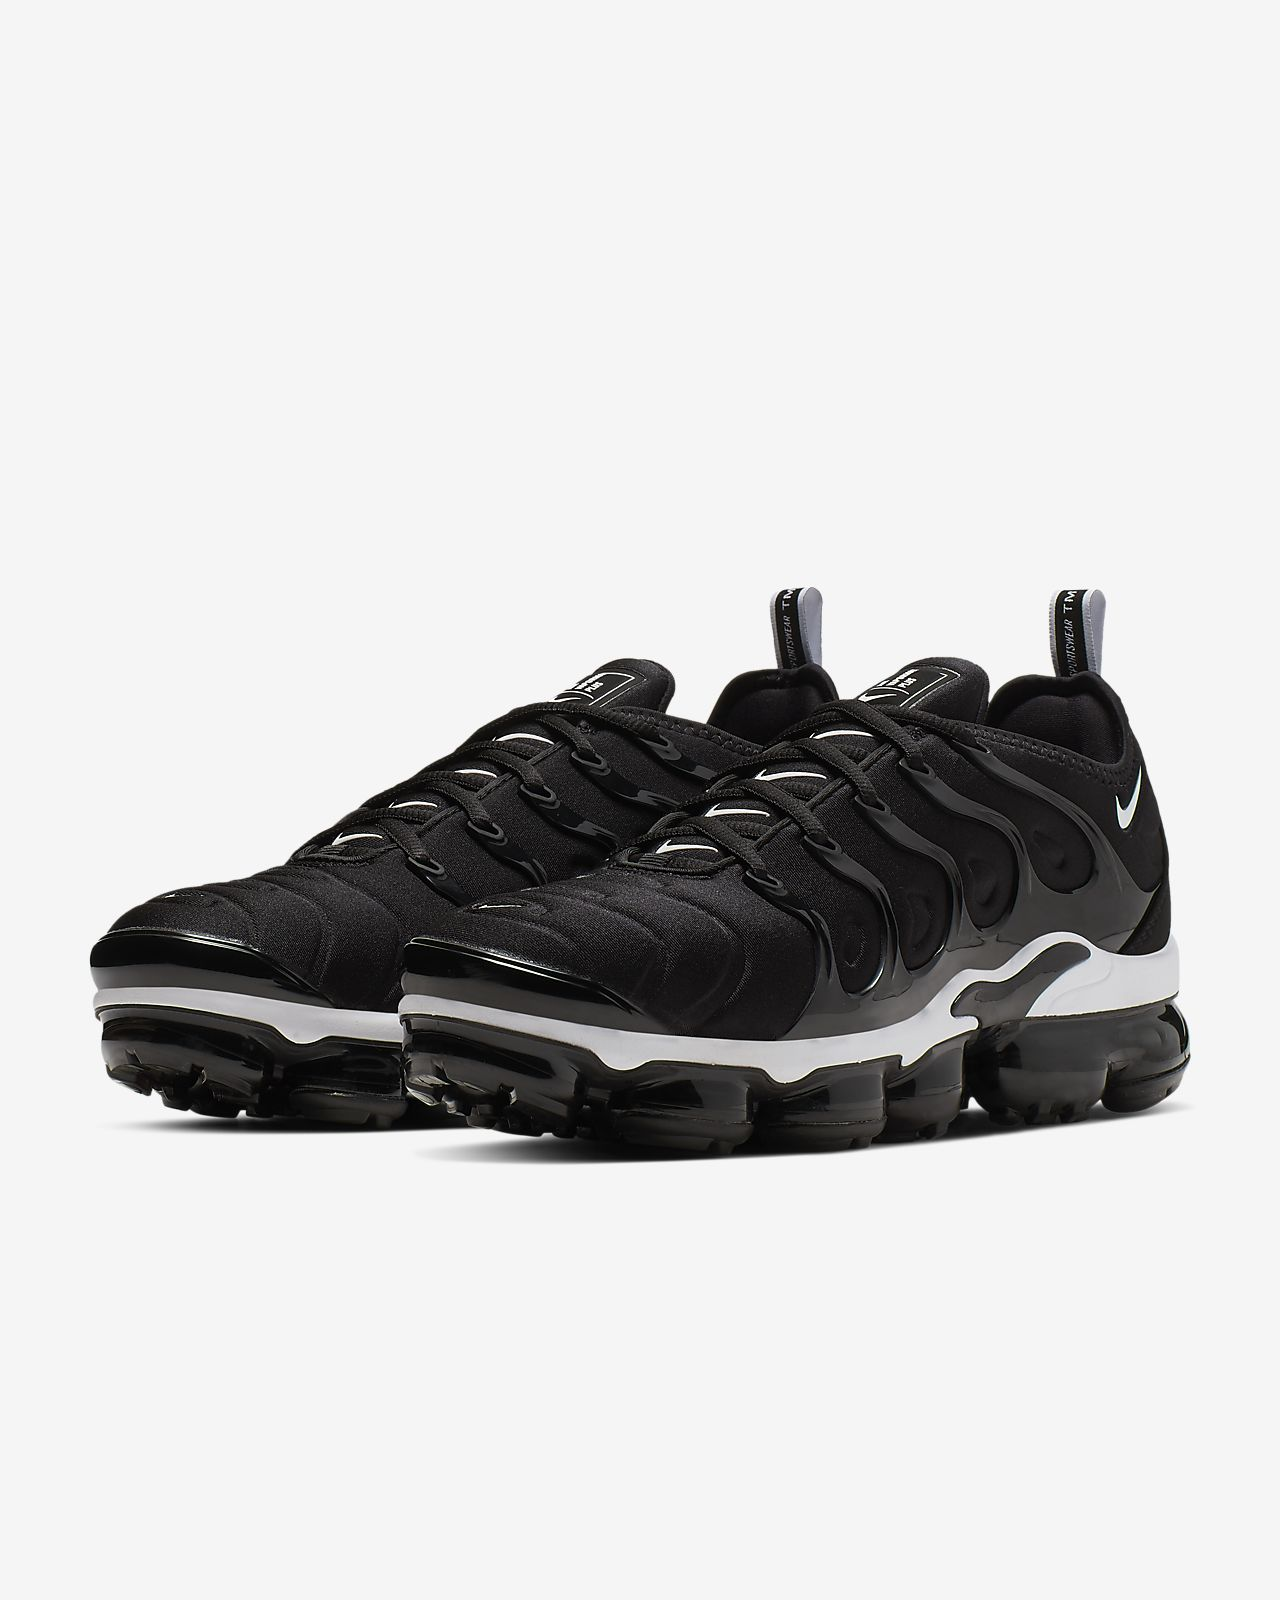 5fec73a40aa Nike Air VaporMax Plus Men s Shoe. Nike.com CA